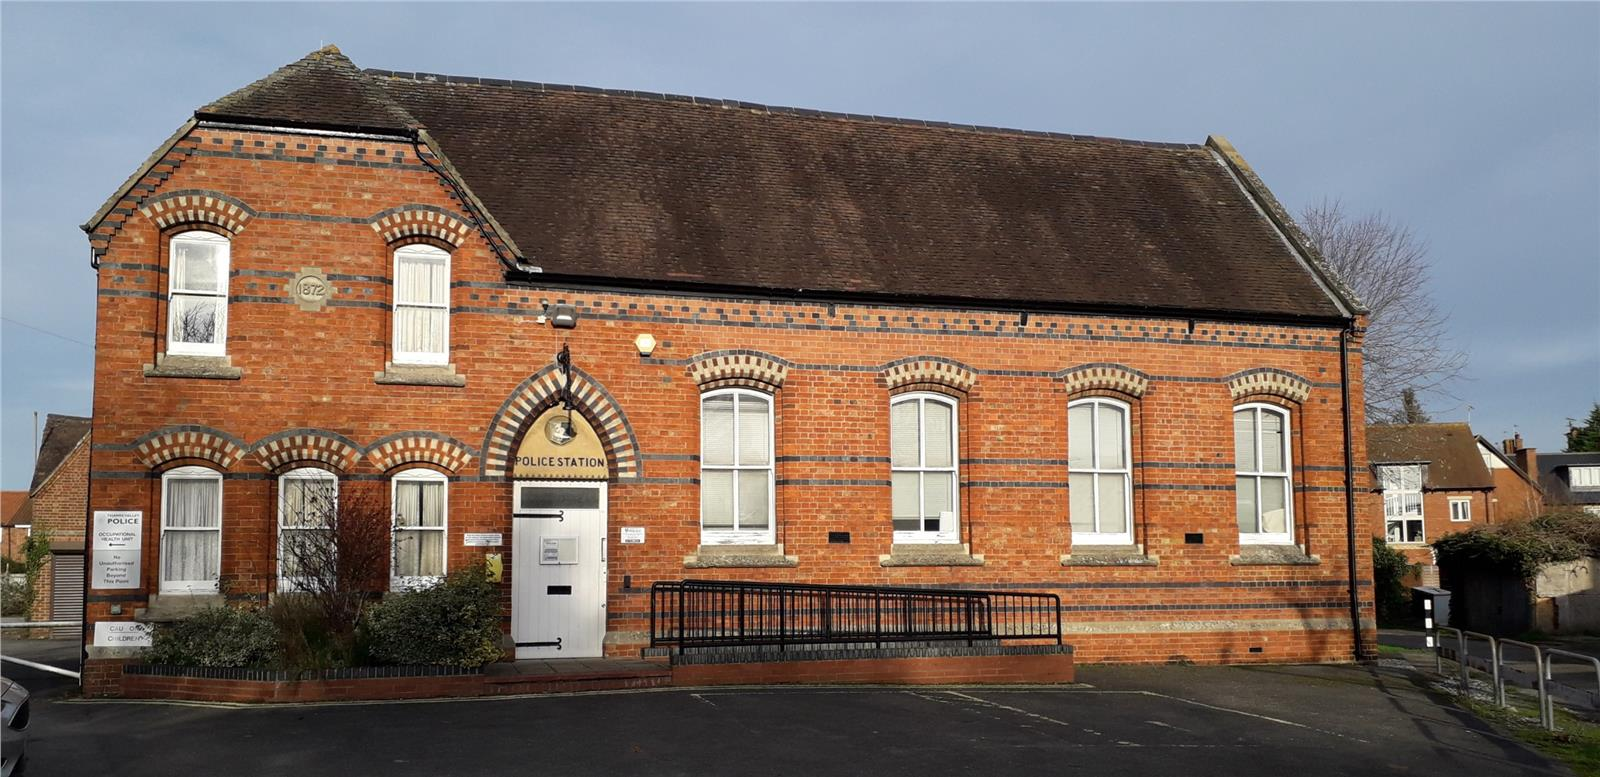 UNDER OFFER - Newport Pagnell Police Station, 124 High Street, Newport Pagnell, South East, MK16